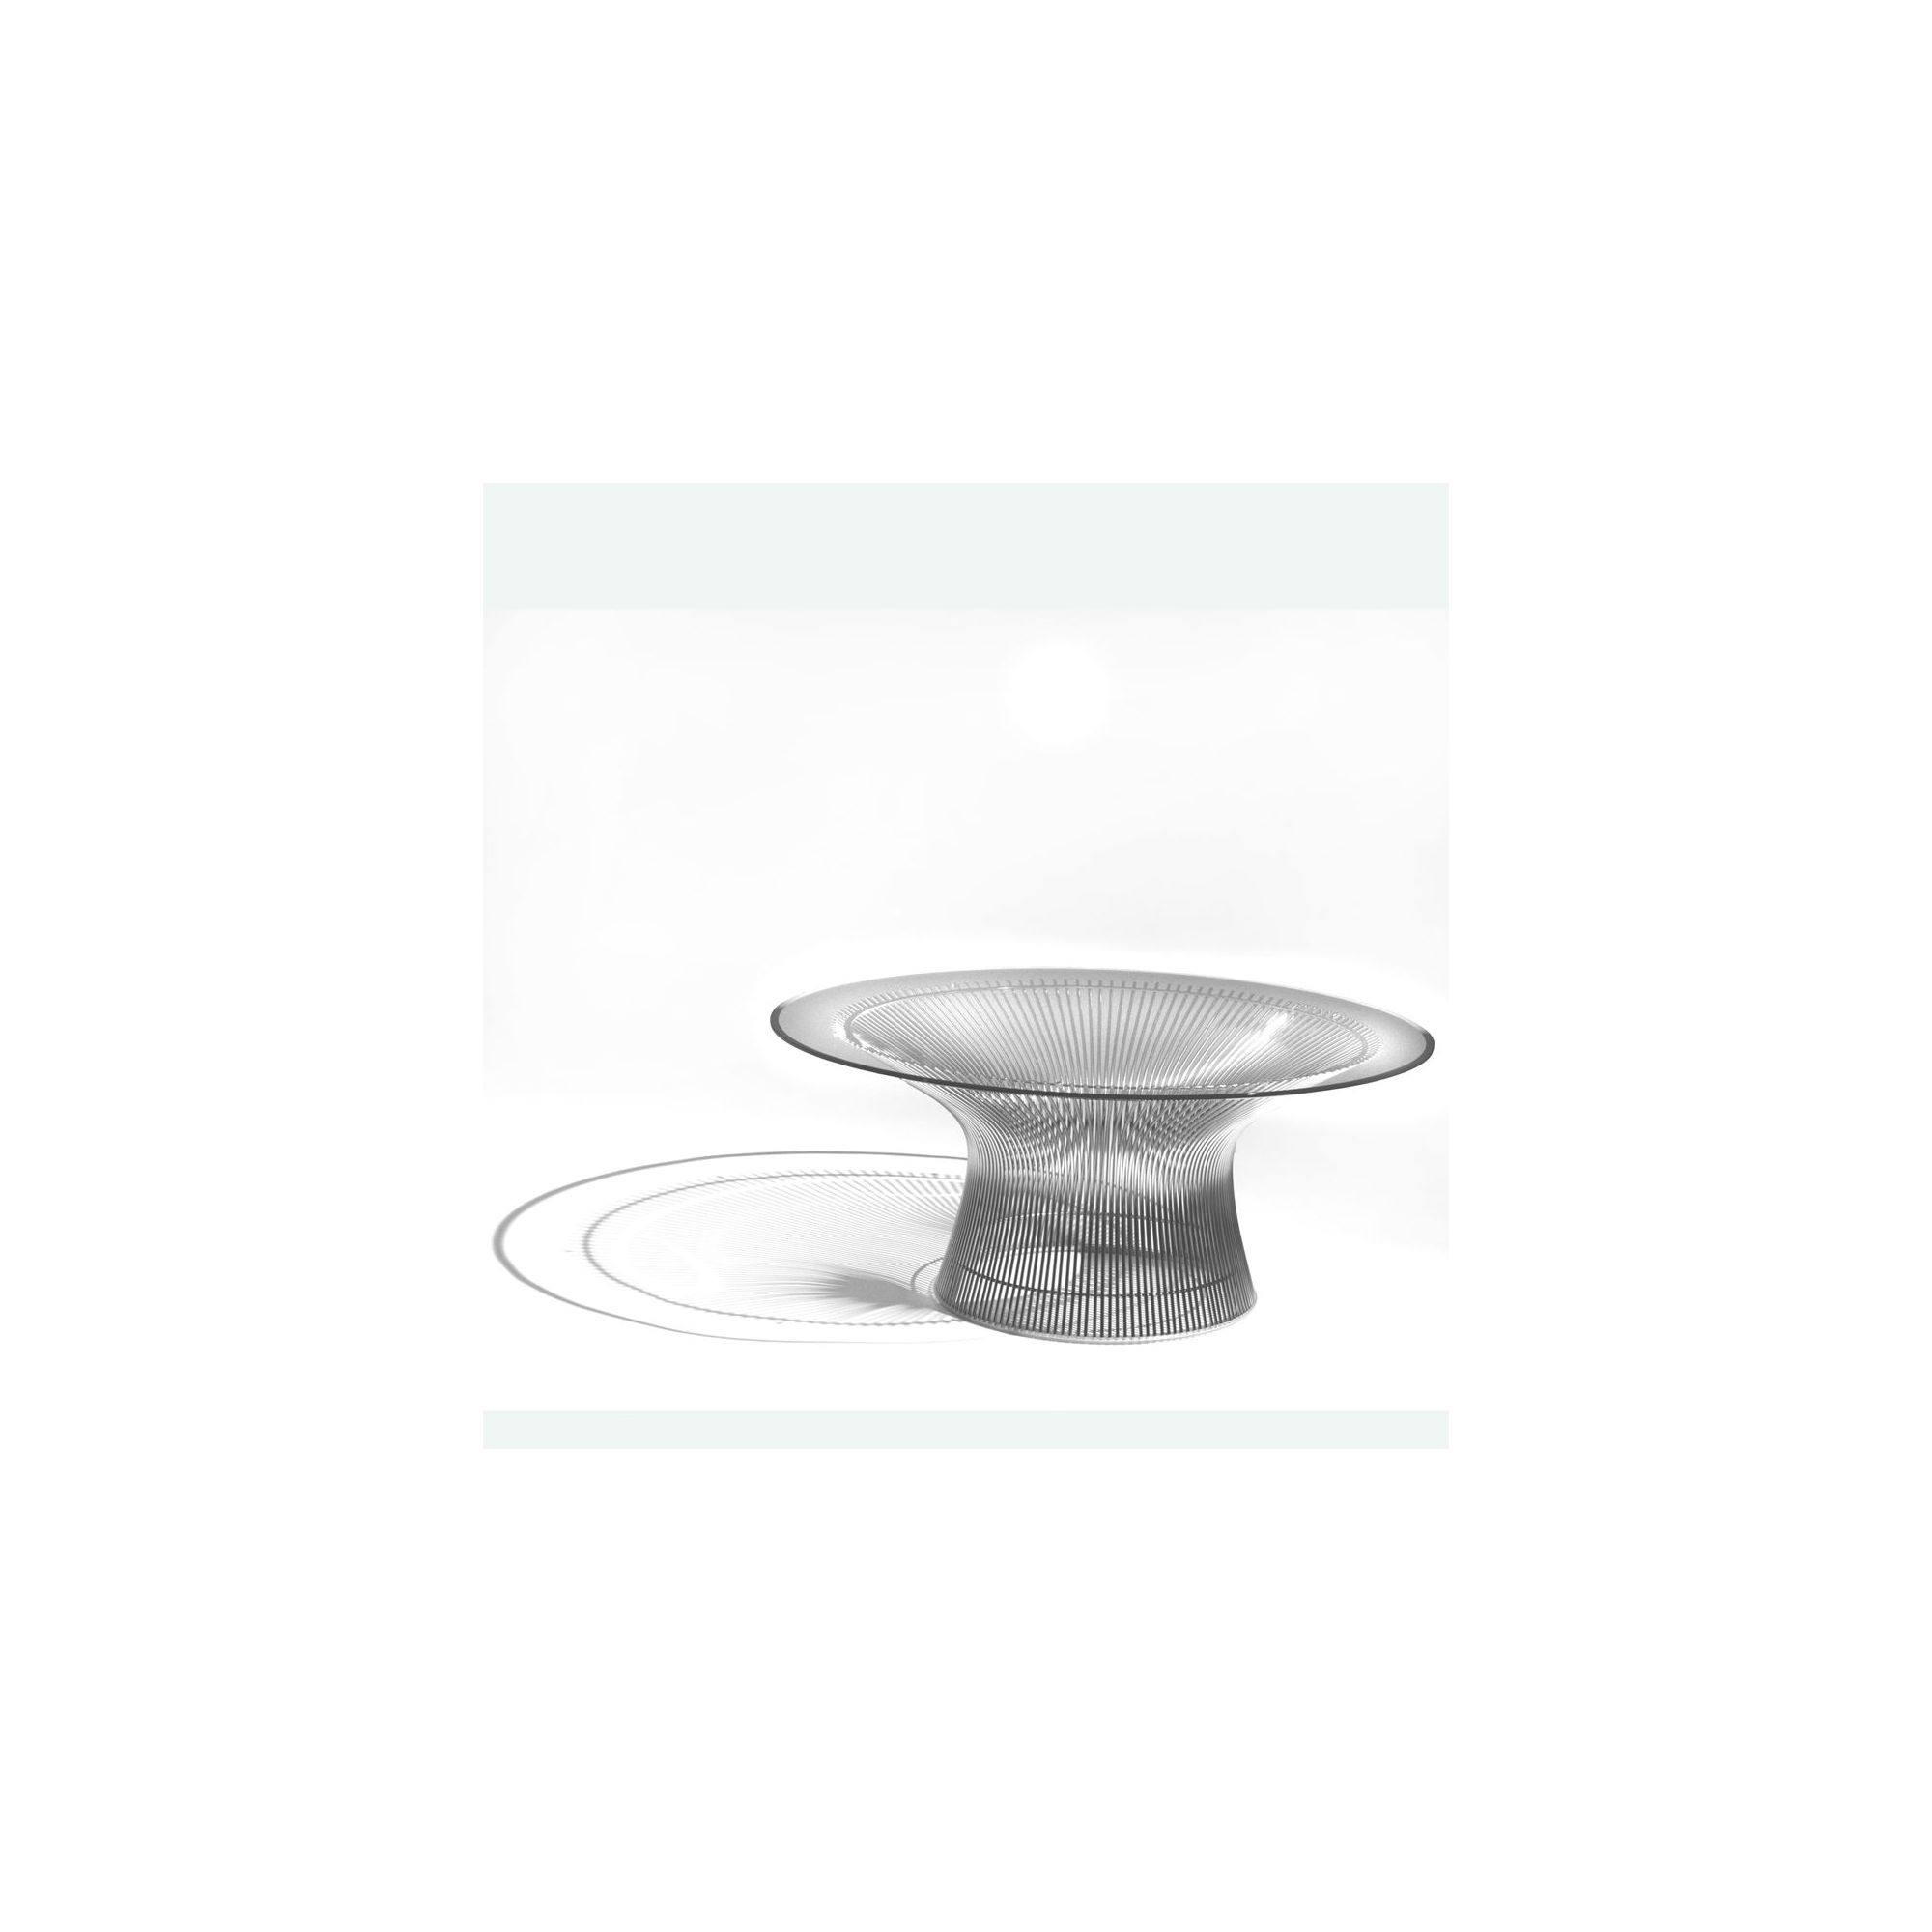 Knoll Coffee Table by Warren Platner - 91.5cm Dia / Metallic Bronze / Clear Glass at Tesco Direct